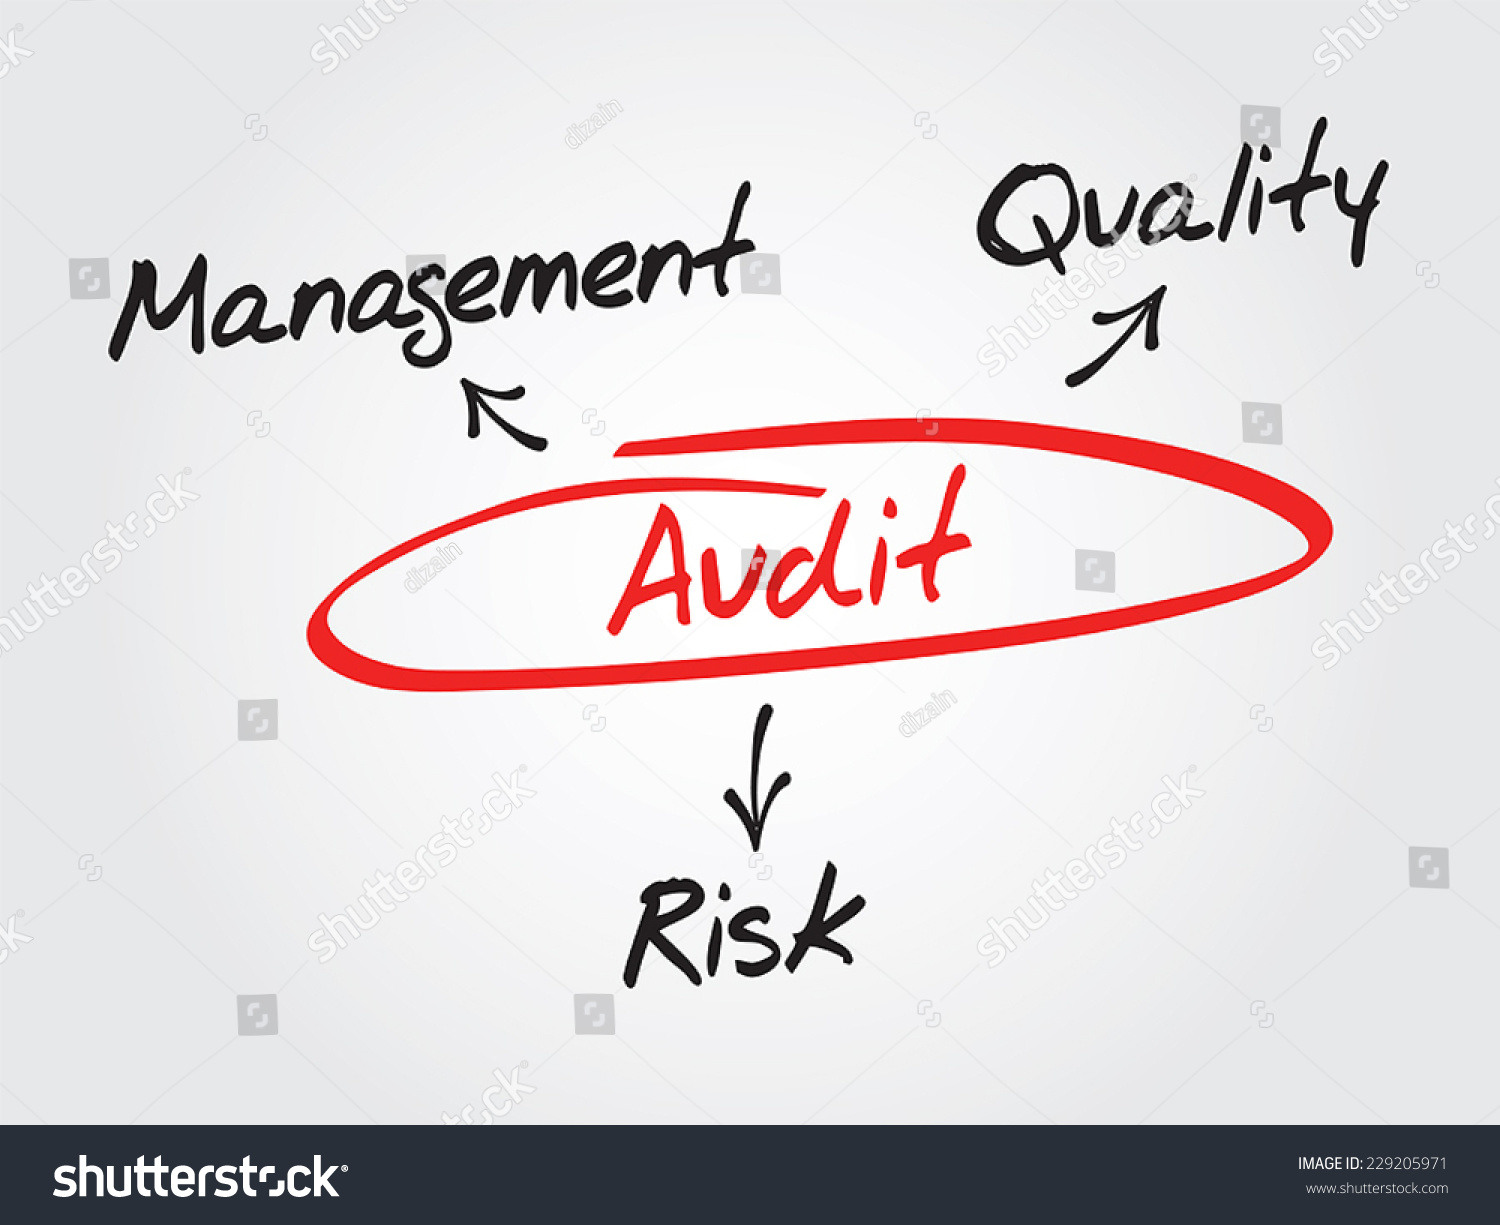 the importance to auditing of concept of audit risks Defining the meaning of 'auditing' and  auditing and monitoring as a joint concept were introduced by the  to identify risks, reduce audit duration.